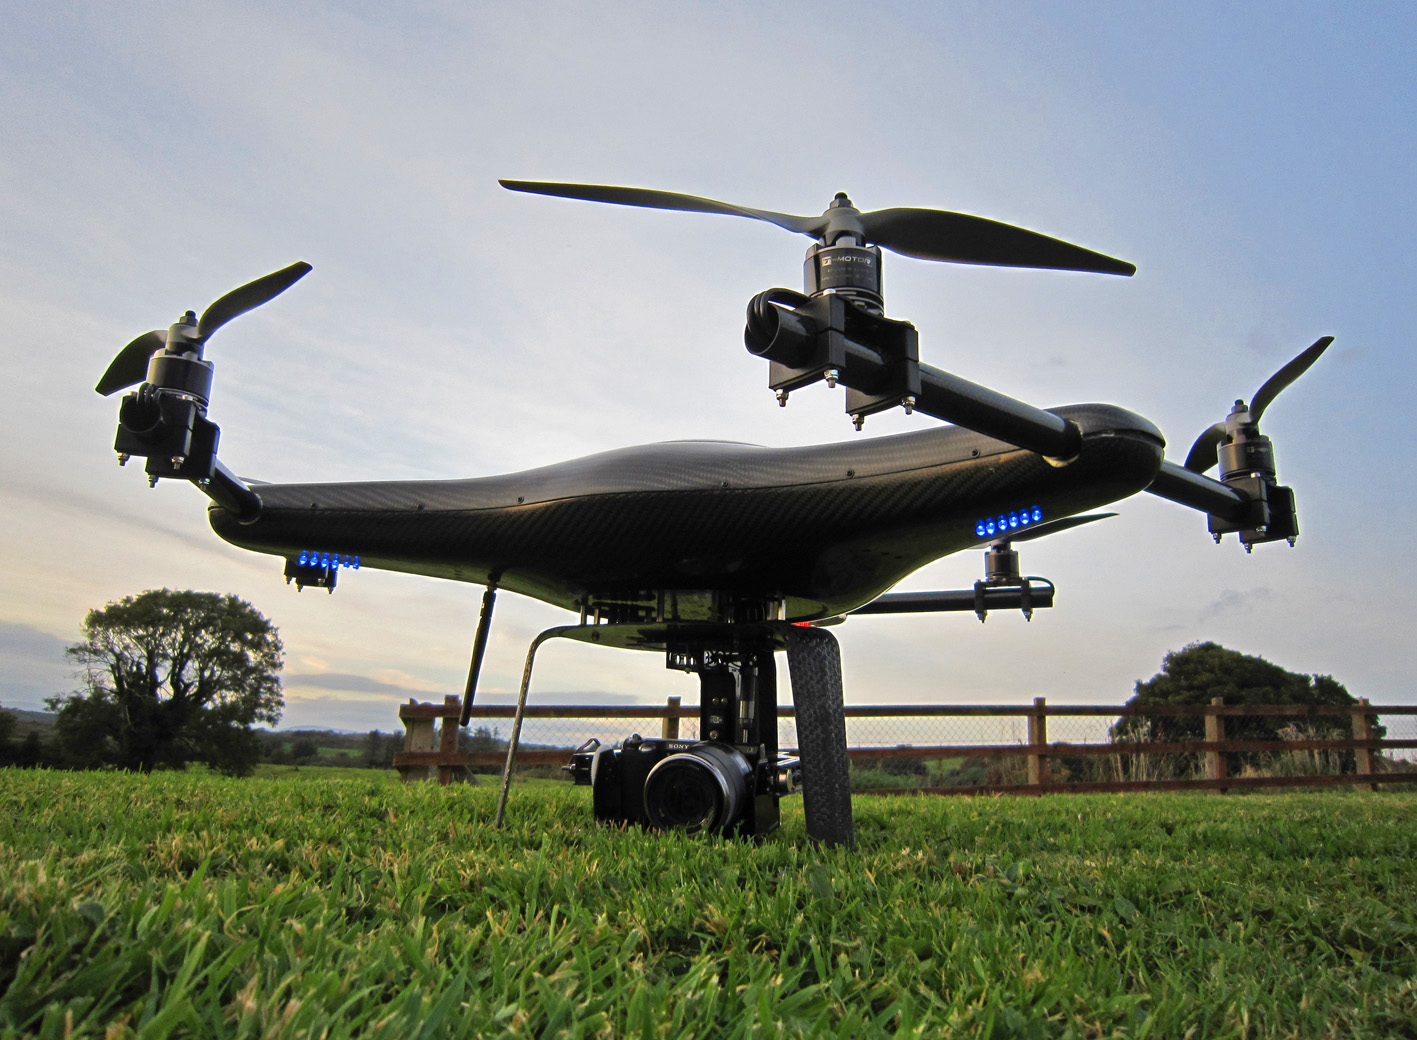 quadcopter photography with Hexcam Is Now Uk Demonstrator And Trainer For Versadrones on 1901433 32591623094 in addition Dfd F183 With Hd Camera likewise Estes Proto X Nano Quadcopter Review additionally Animal Eyes Photo Contest Finalists likewise Quadcopter Frames.